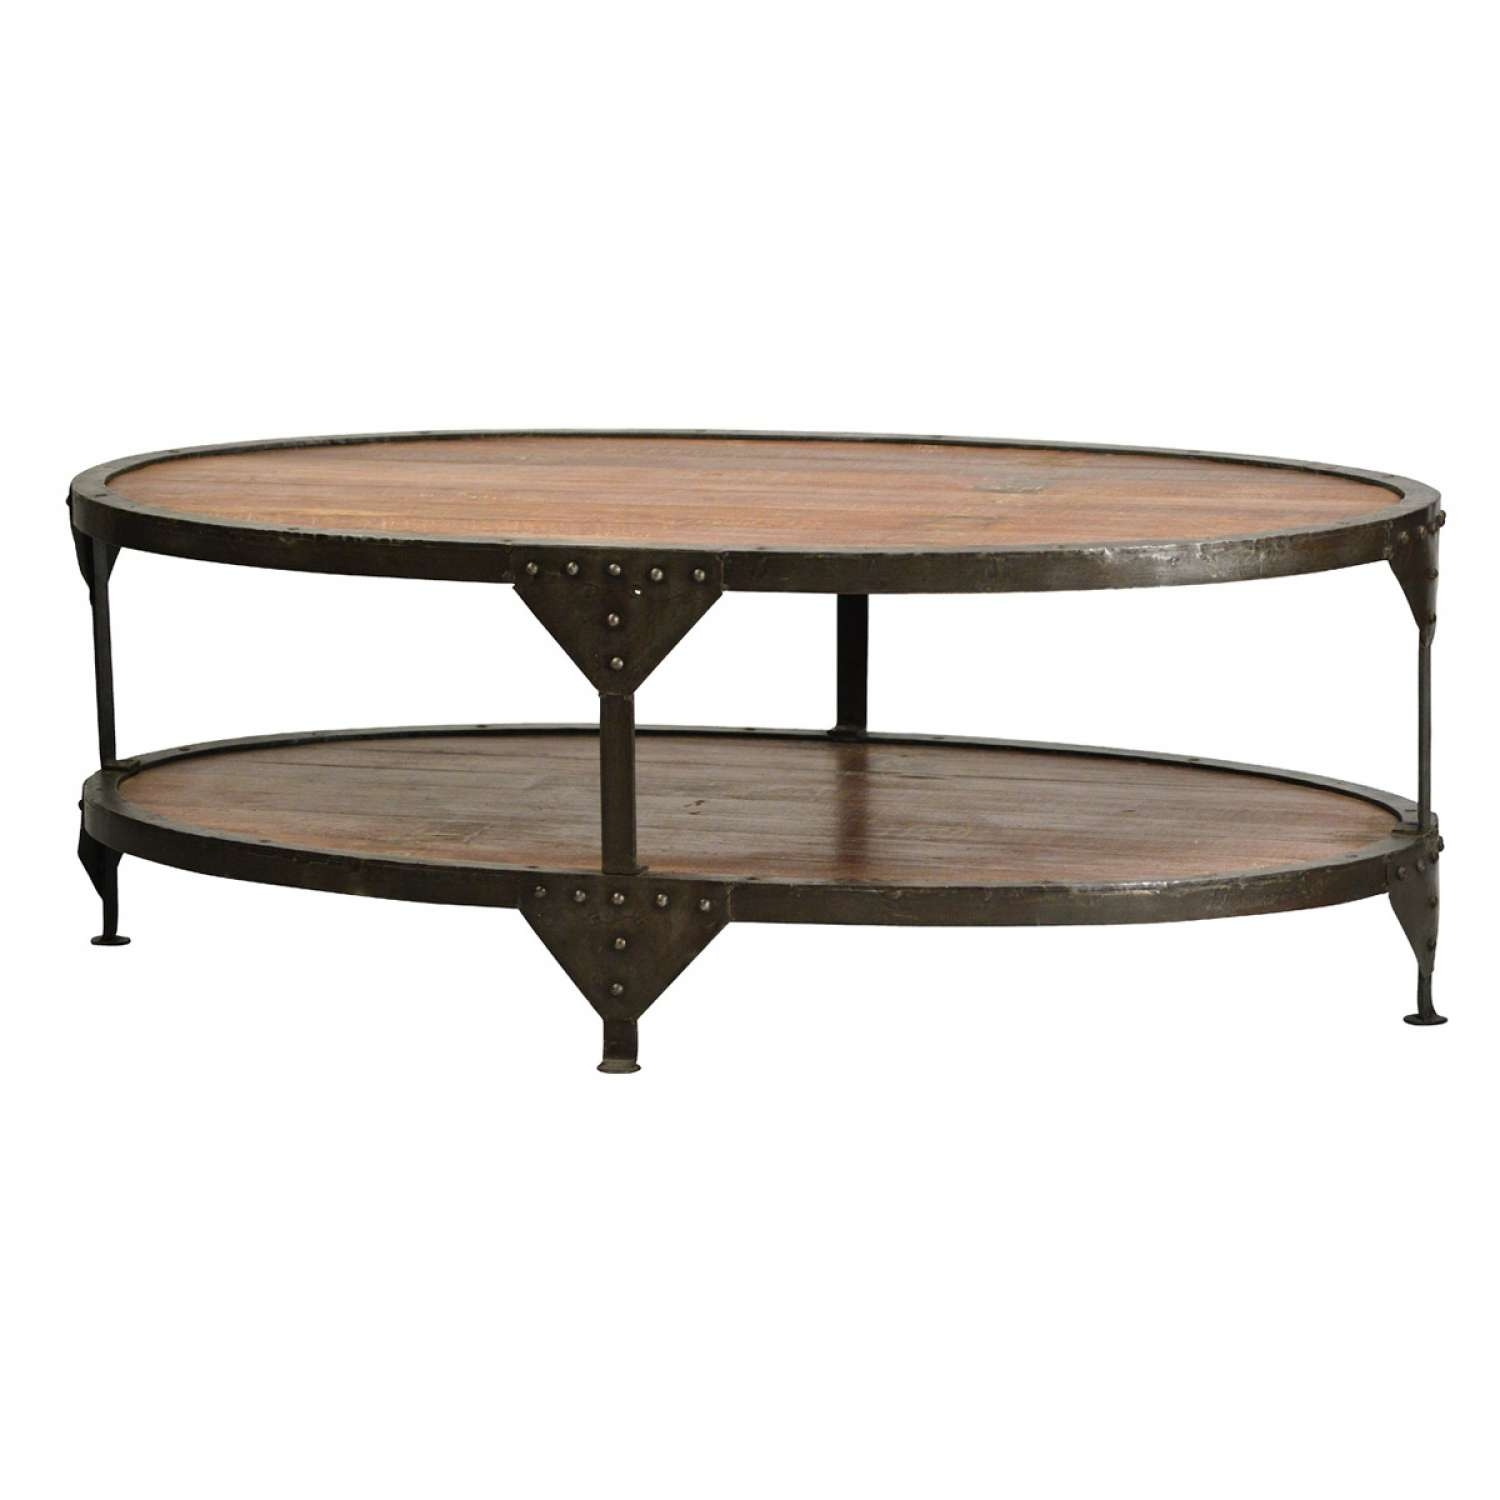 Coffee Tables : Contemporary Oval Coffee Table Glass Gold Small Throughout Latest Oblong Coffee Tables (View 6 of 20)